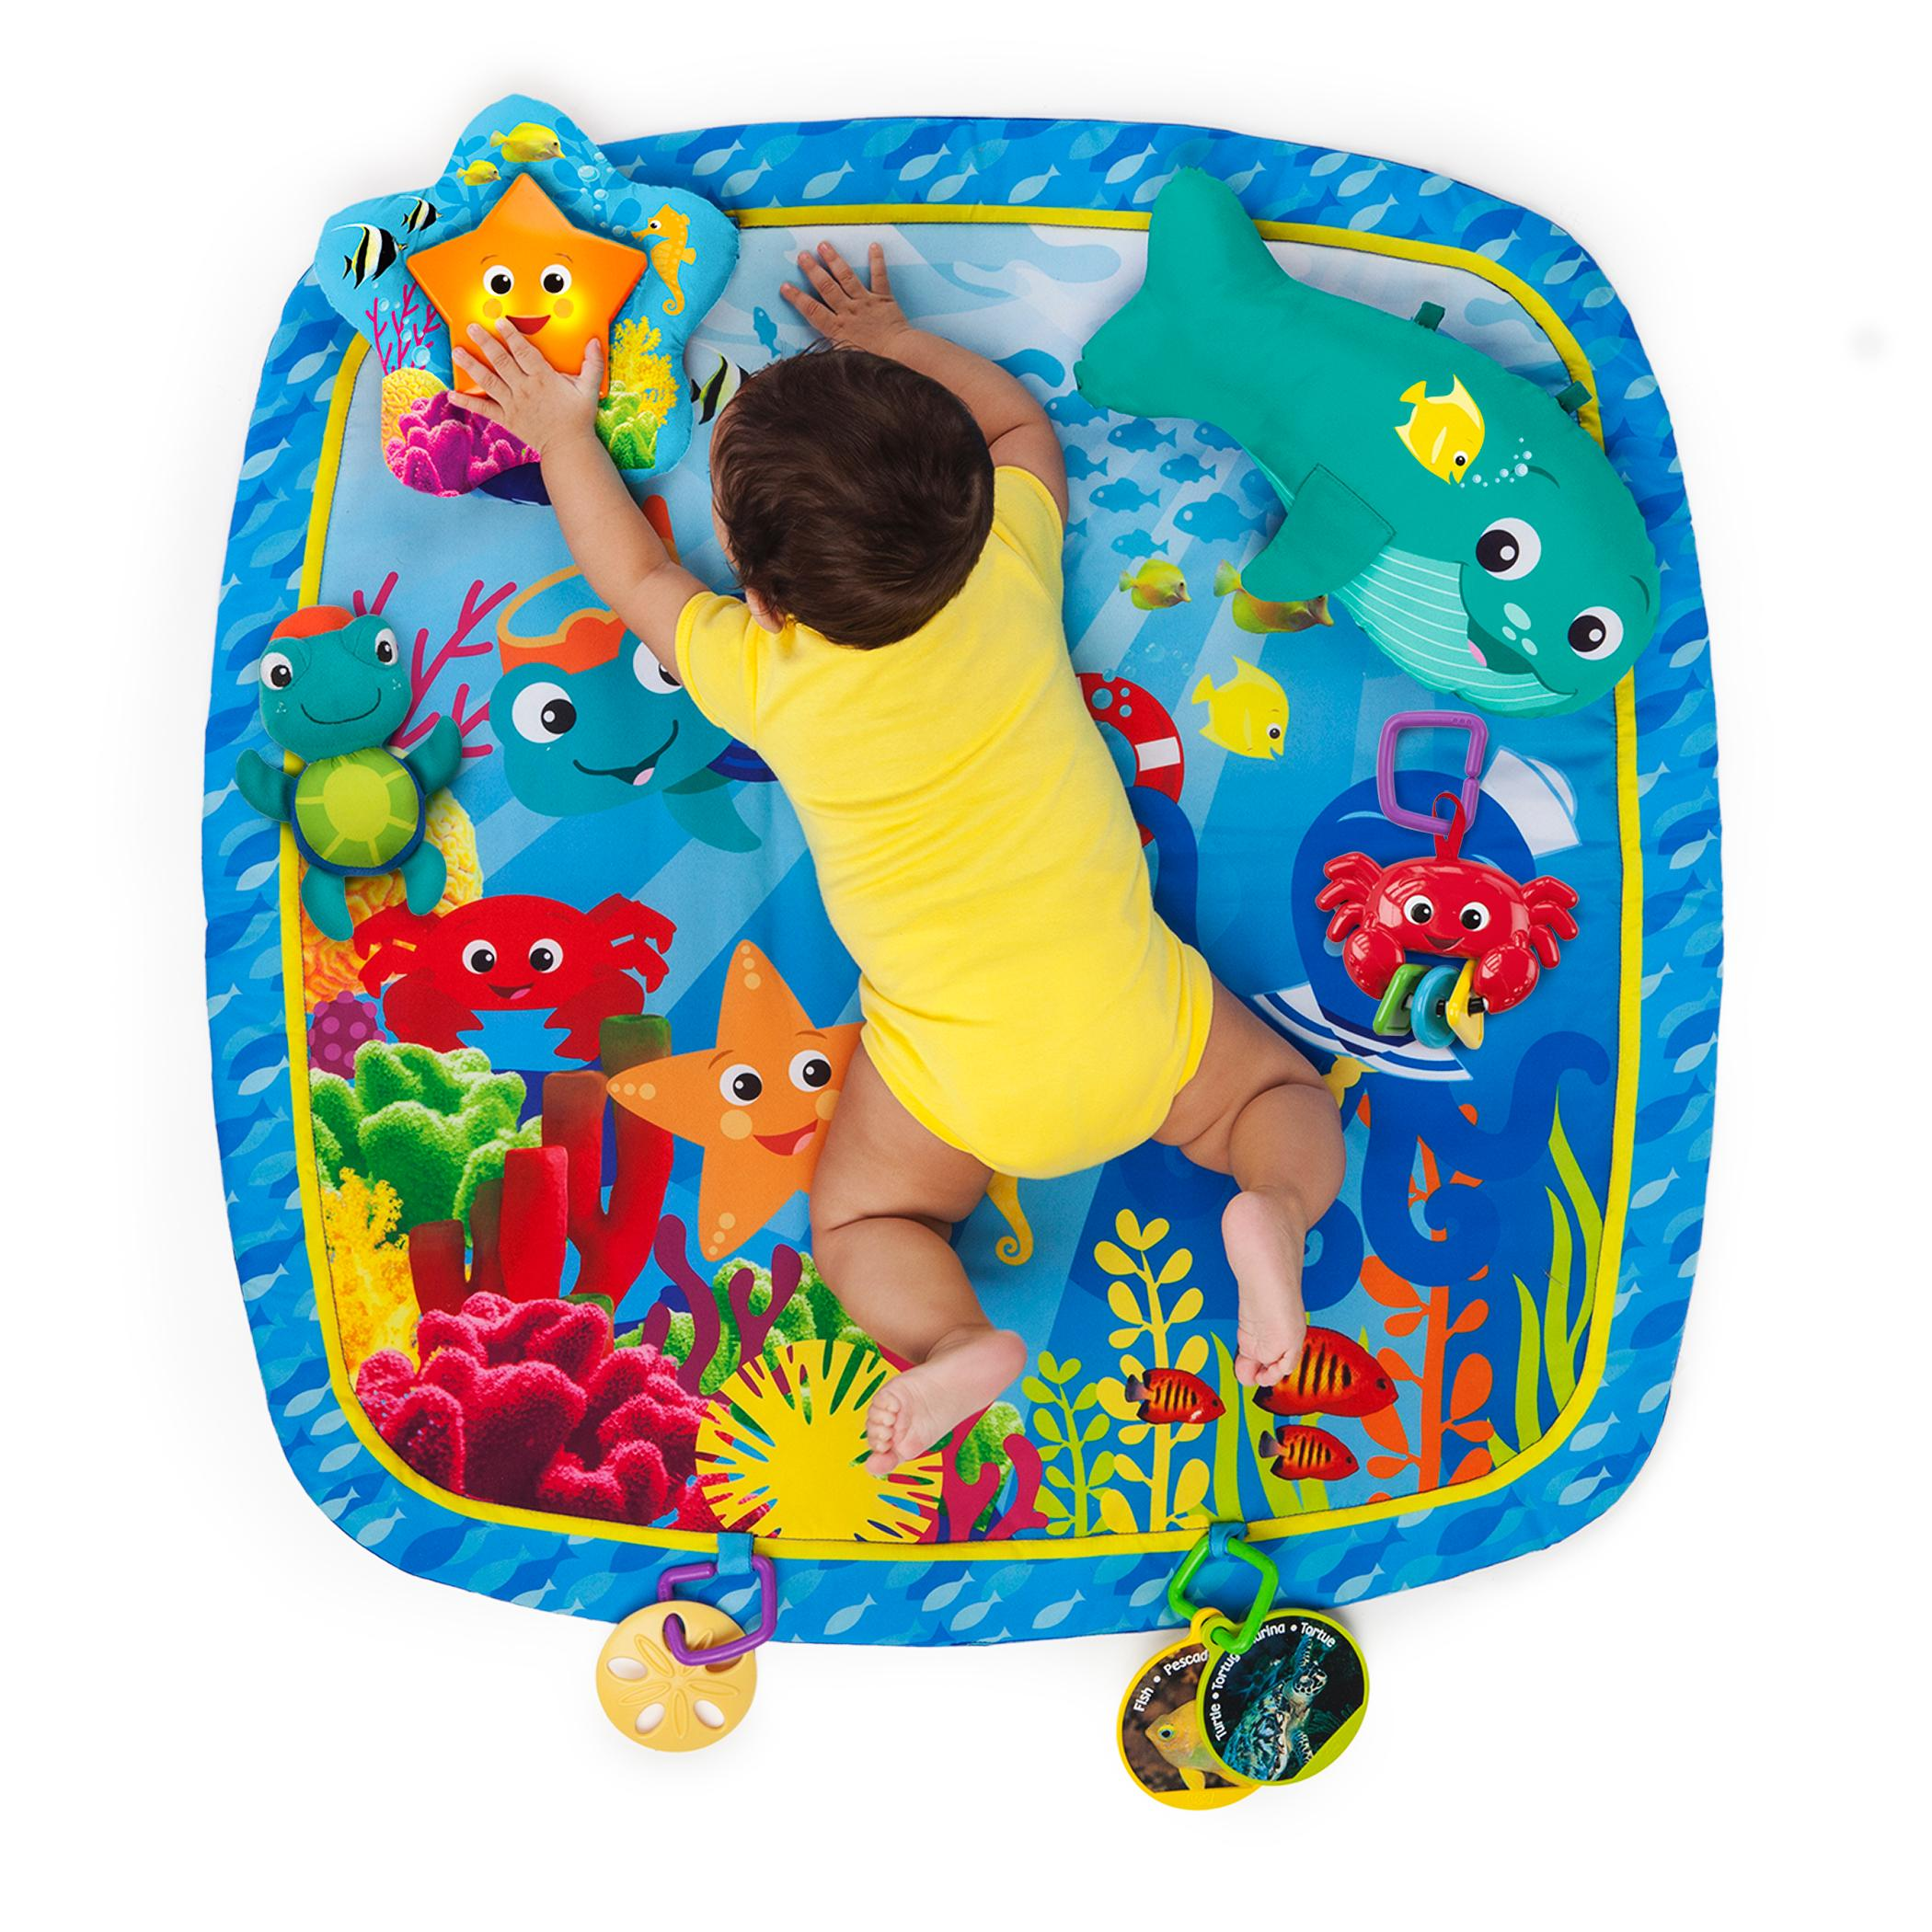 New Multi Color Play Gym Nautical Friends W 6 Additional Toys By Baby Einstein